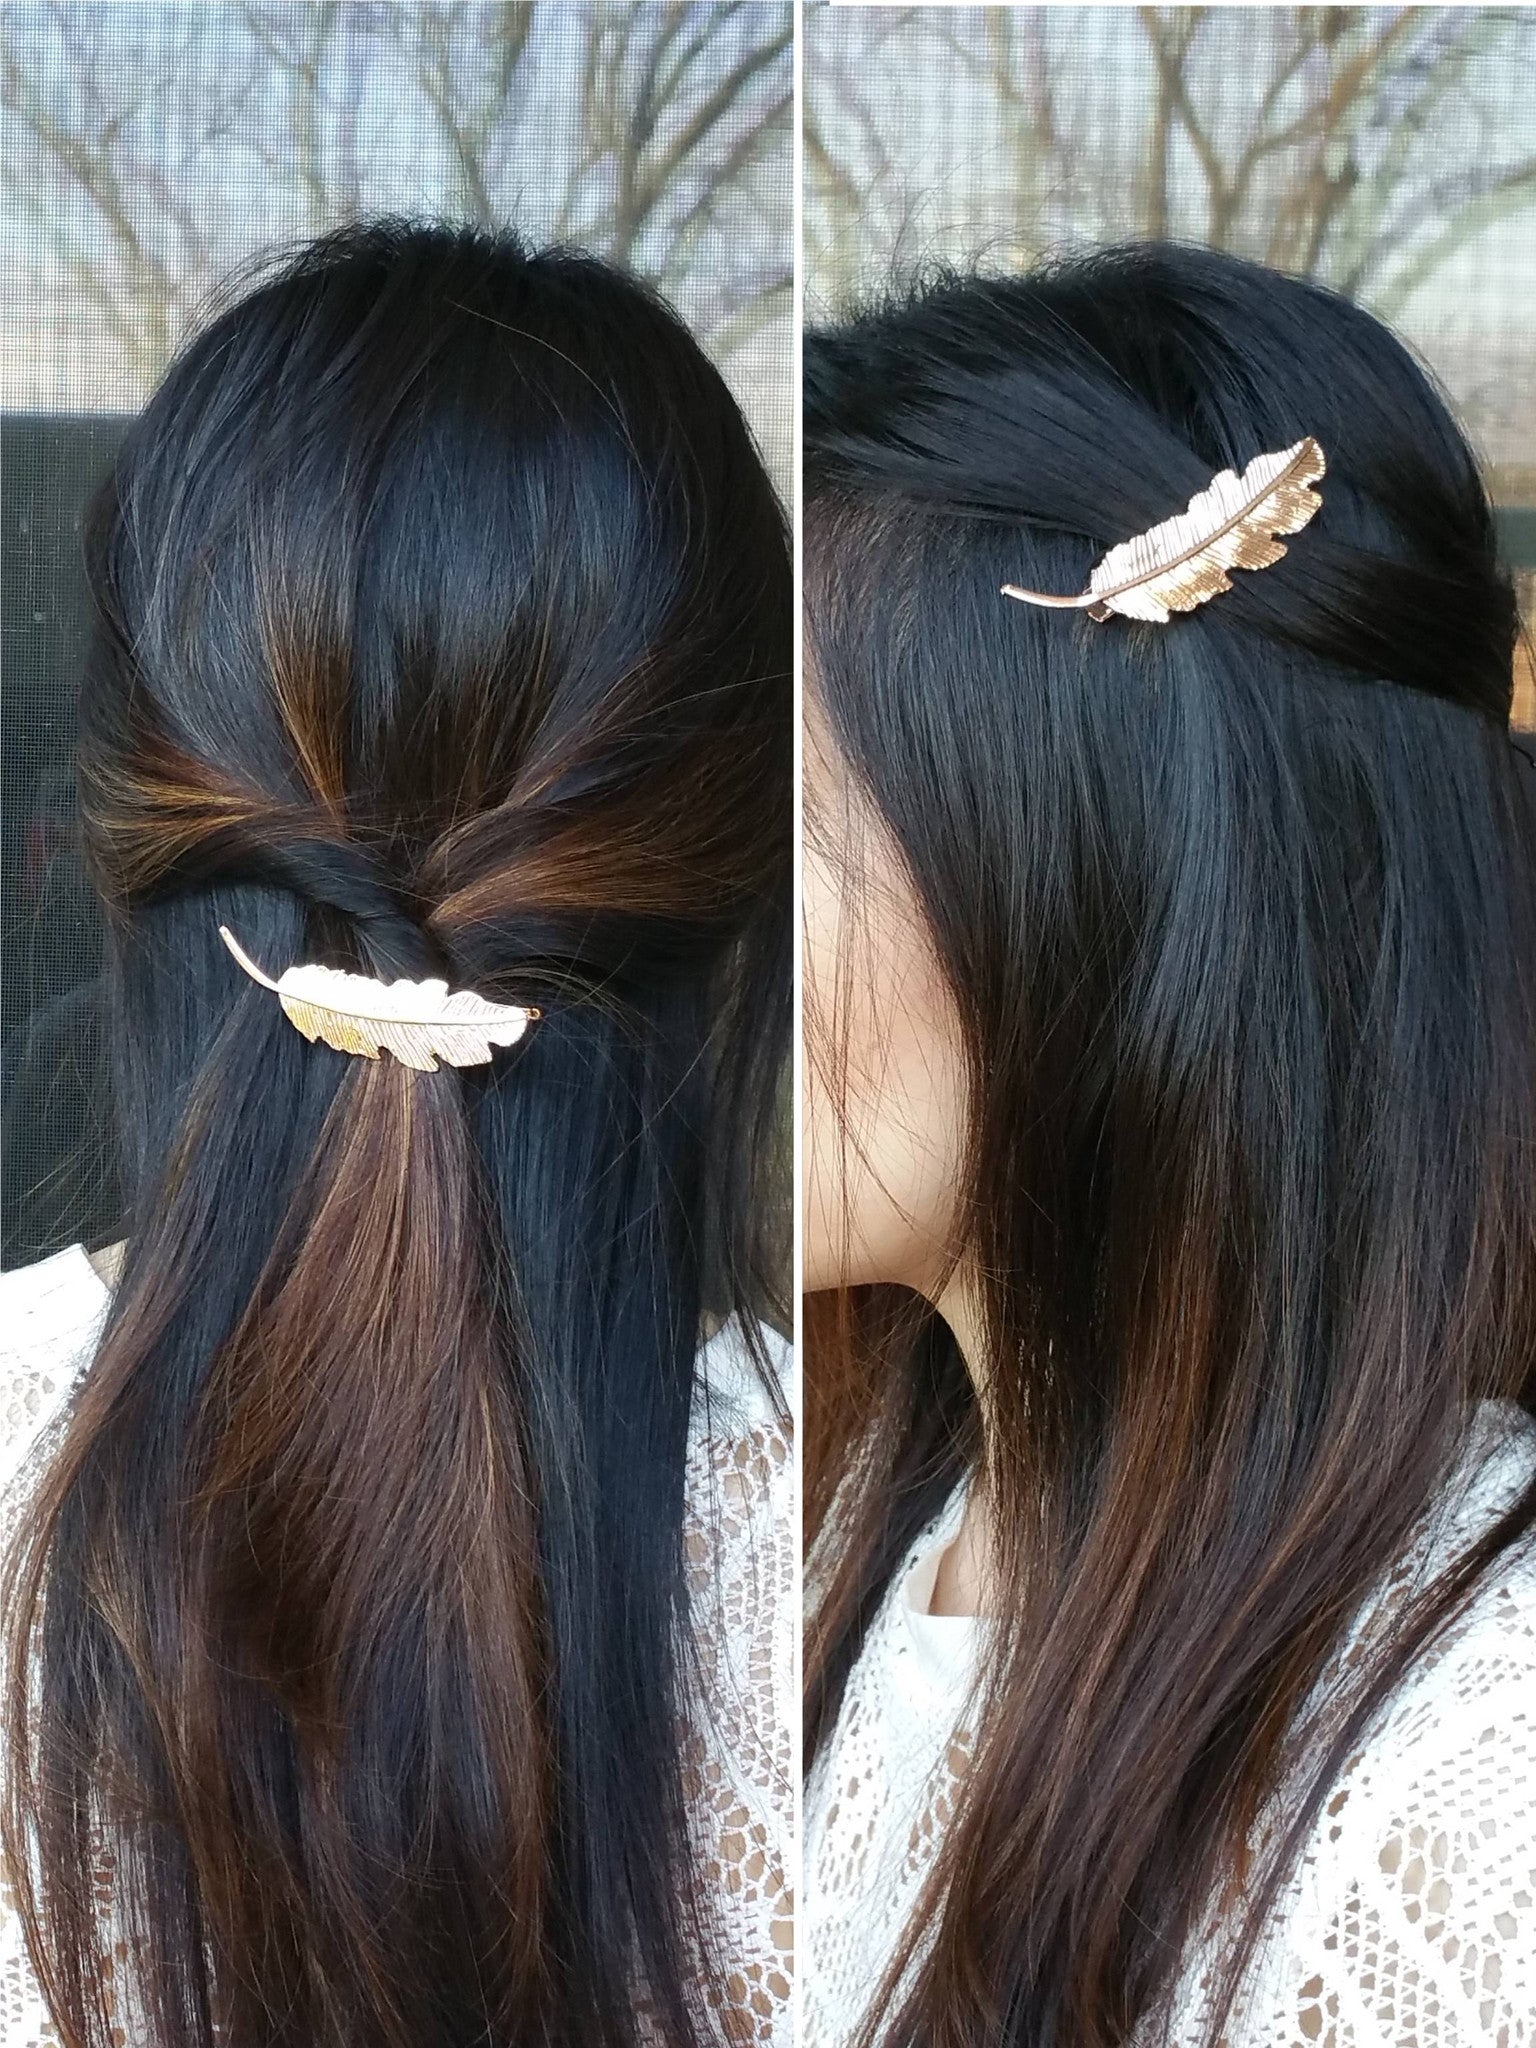 Feather Hair Clip, Leaf Hair Clips, Leaves Hair Accessories, Wedding Hair Accessories, Wedding Hair, Bridesmaid Hair, Bridesmaid Hair Accessories - Bedao Boutique